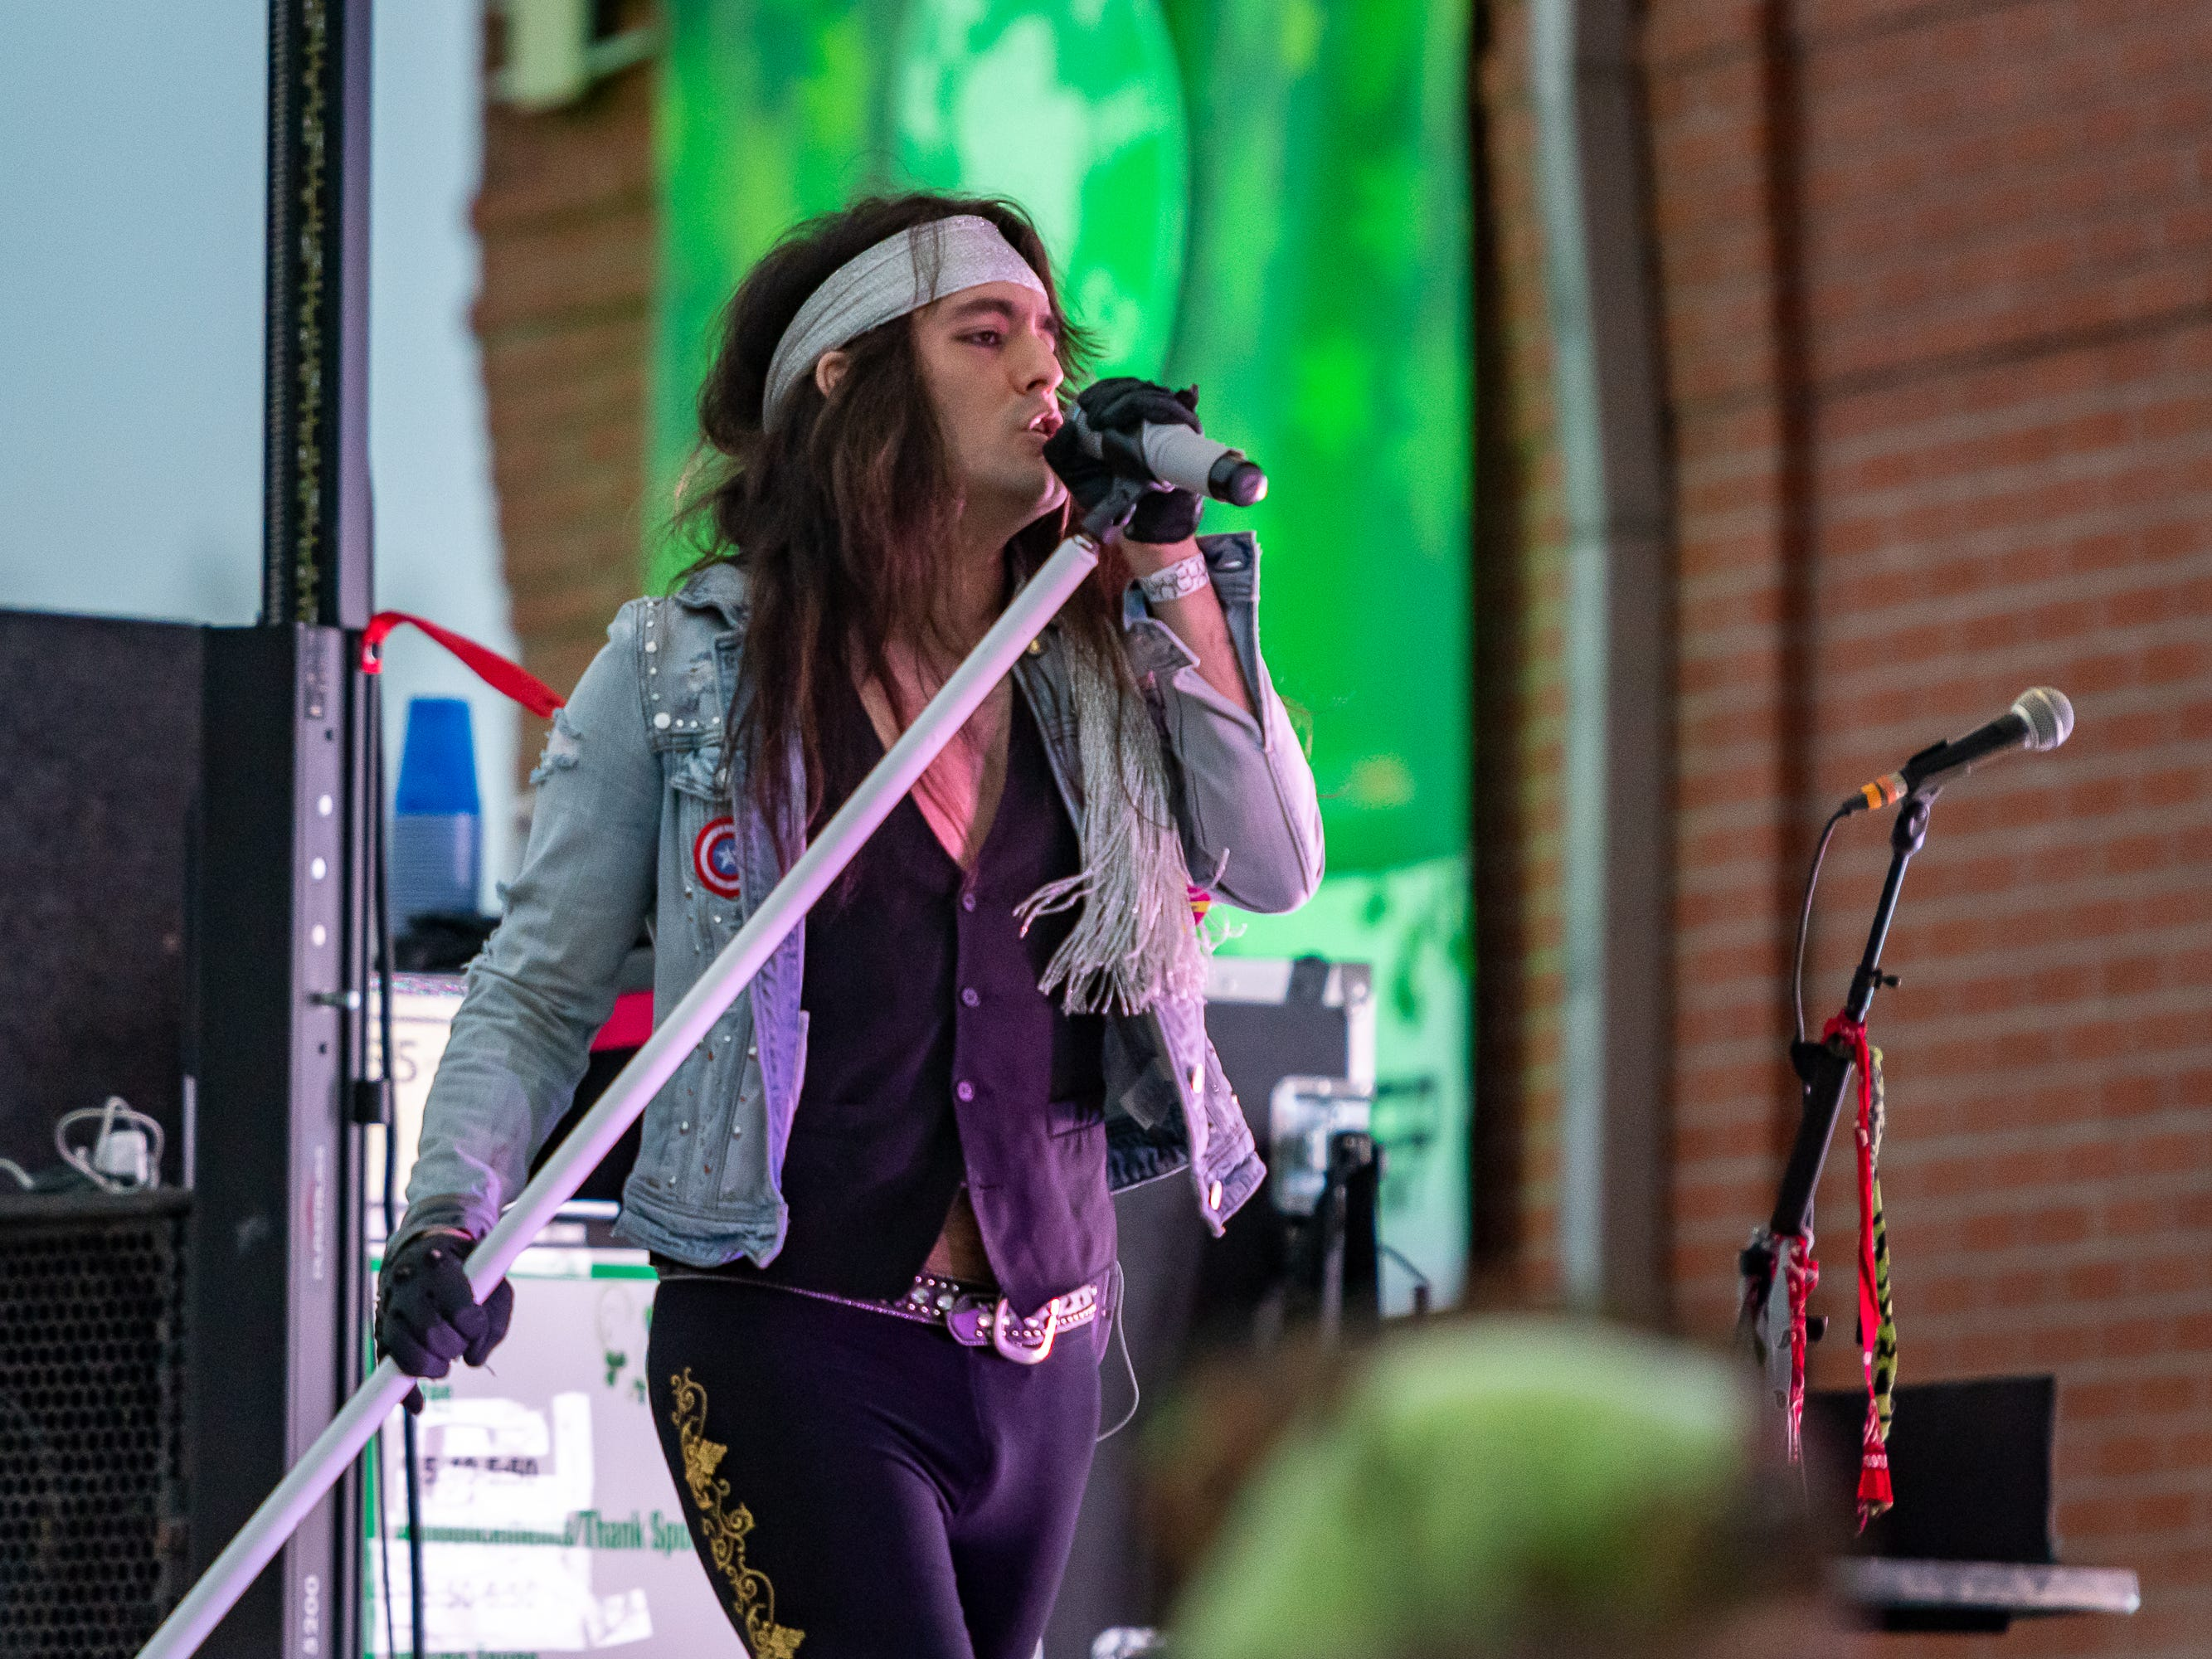 Patty in the Parc featuring Wayne Toups, LA Roxx and Blues Traveler. Saturday, March 16, 2019.